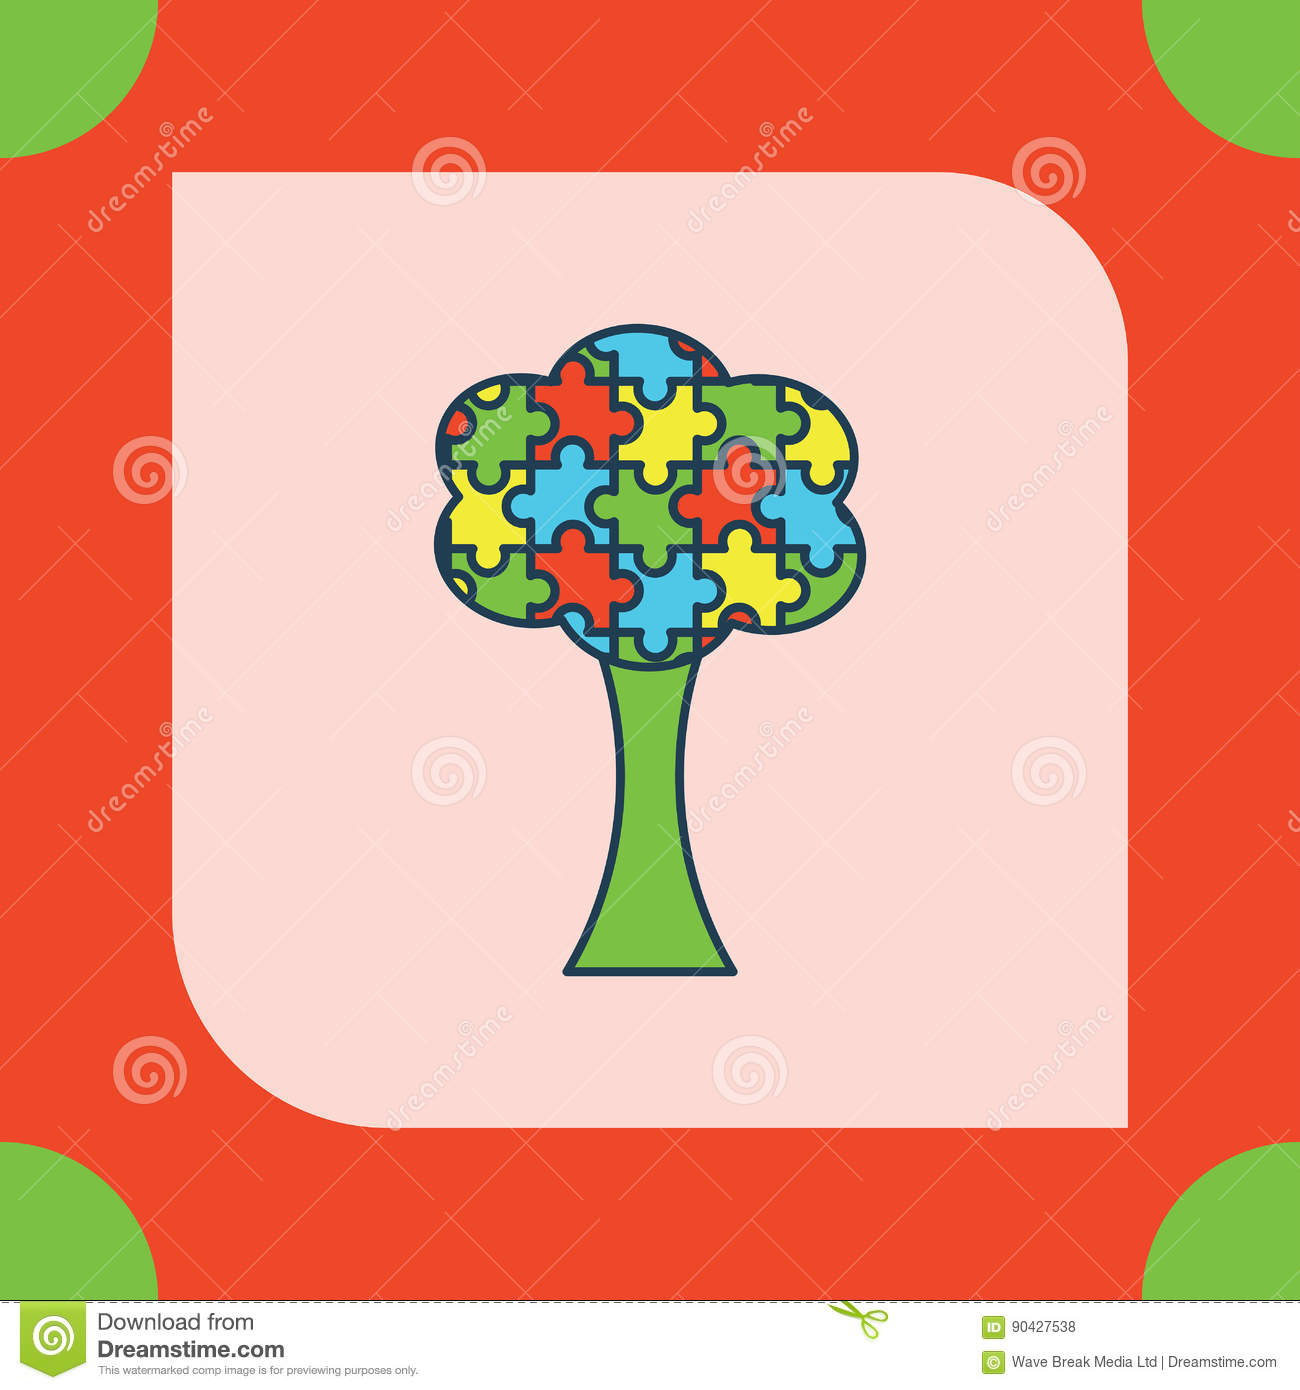 Greeting Card With Autism Tree Symbol Stock Vector Illustration Of